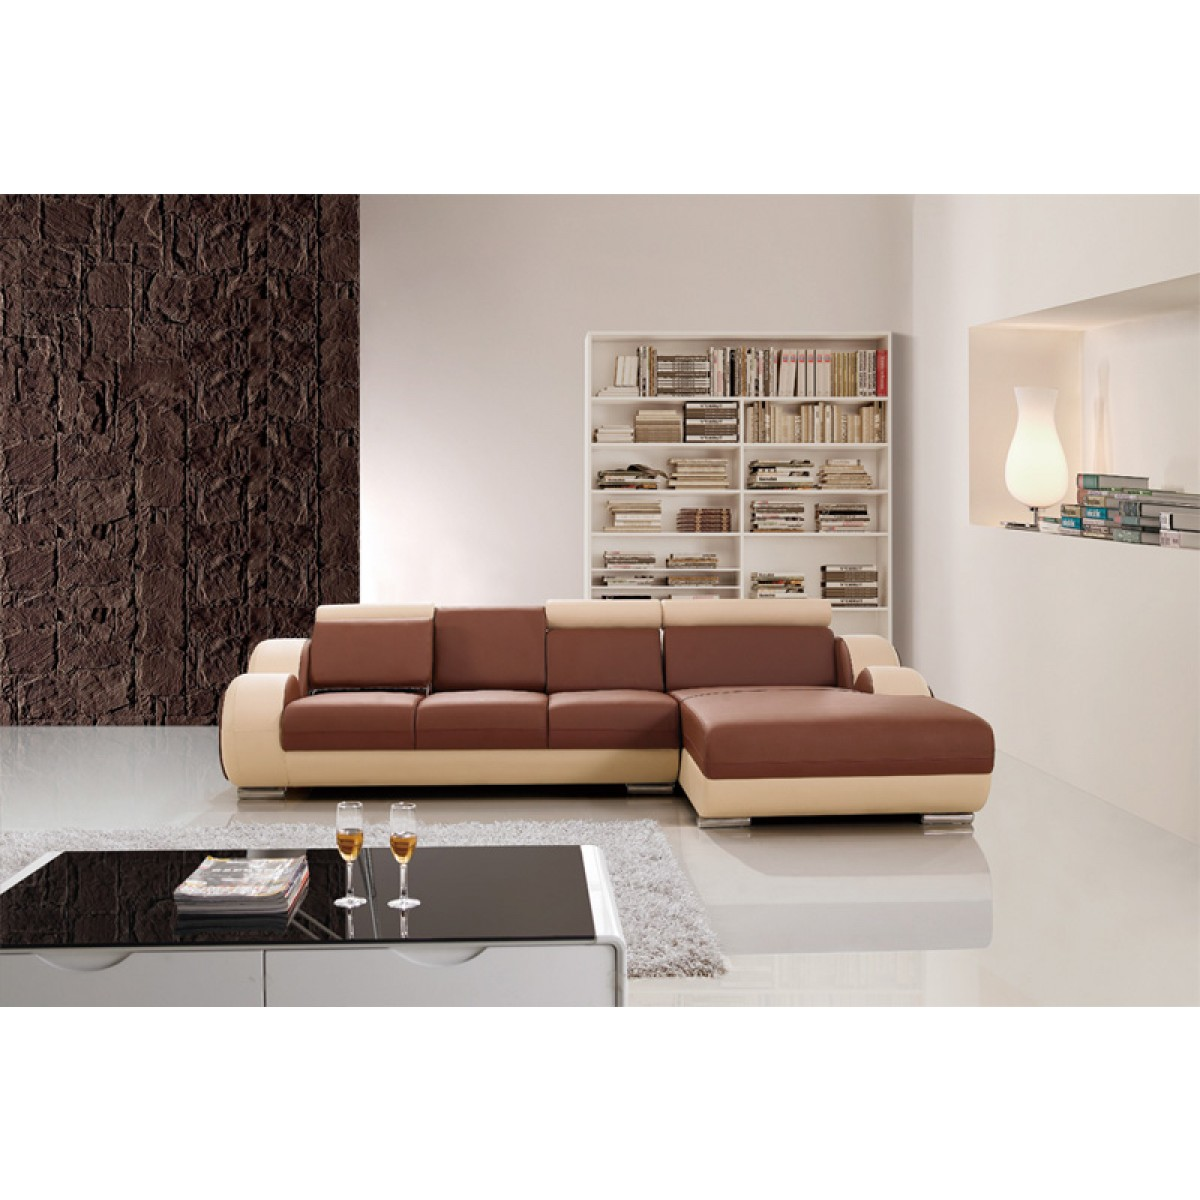 Canap d 39 angle relax en cuir 5 places roll - Capitonner un canape ...